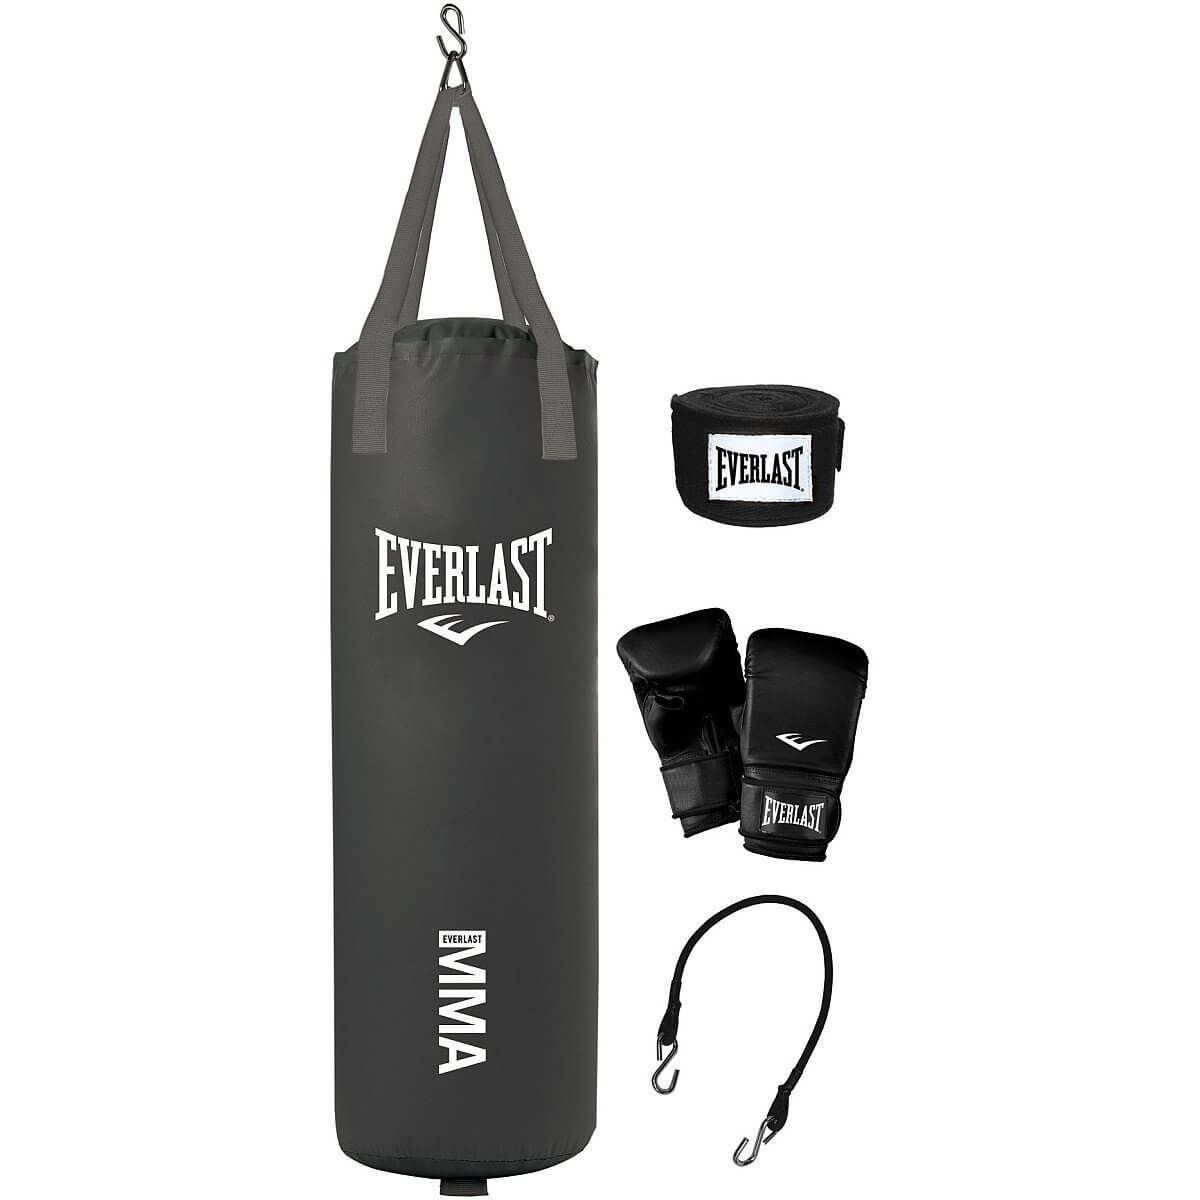 A hanging heavy punching bag